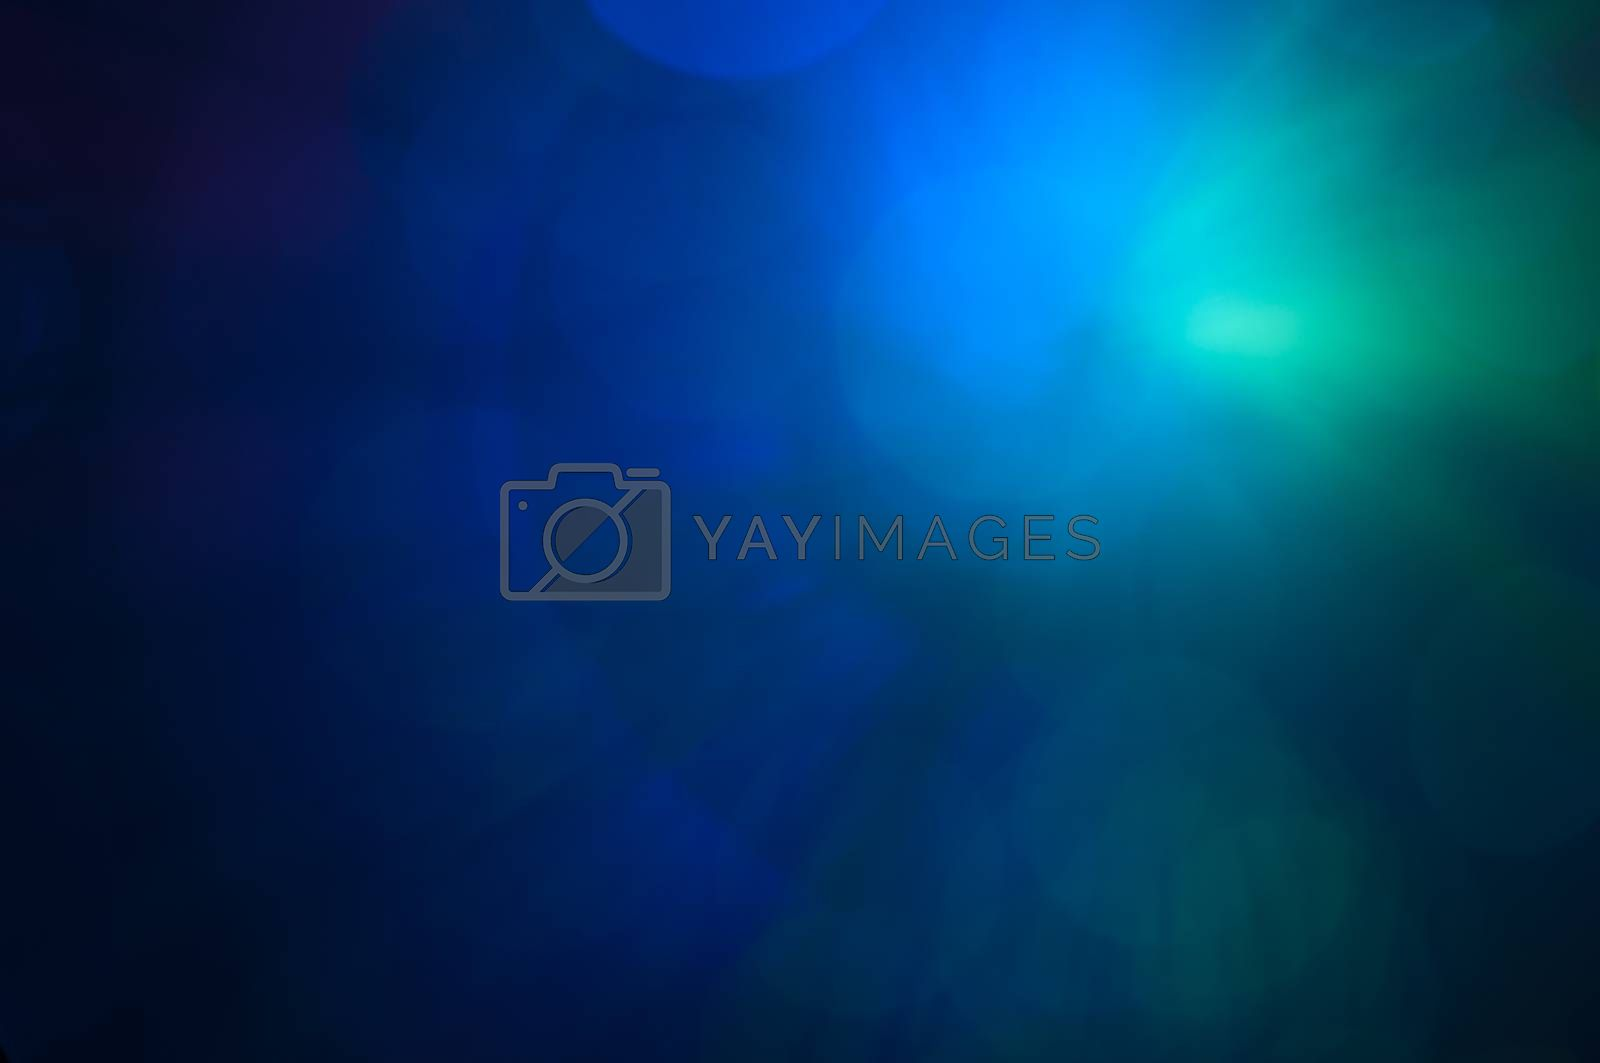 Abstract background blurry lights from optic fibers